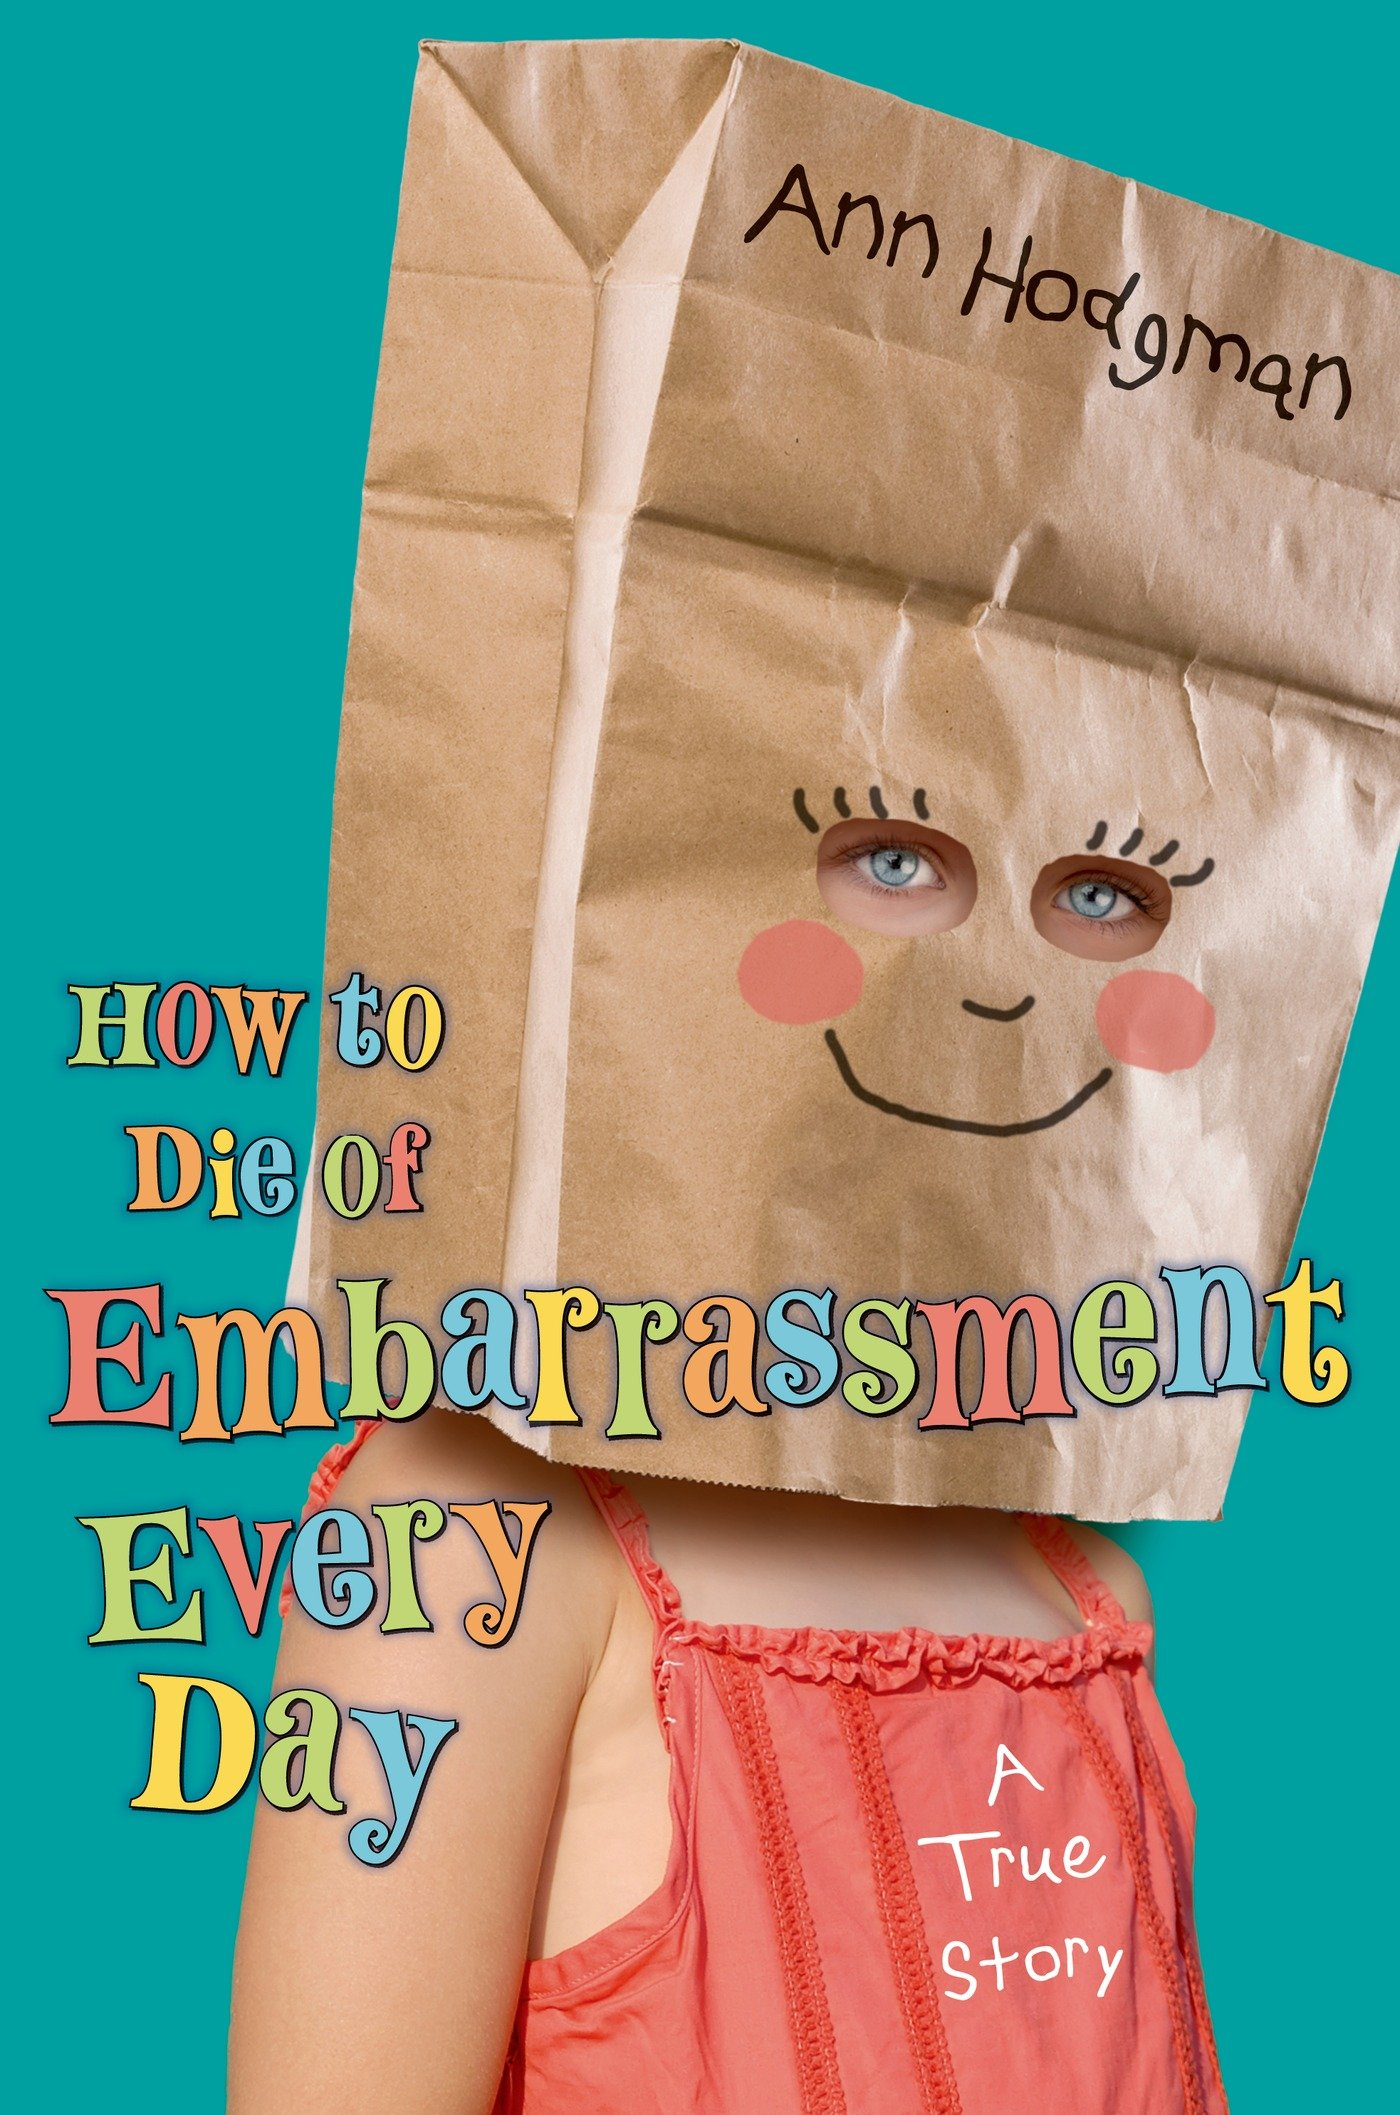 How to Die of Embarrassment Every Day: A True Story